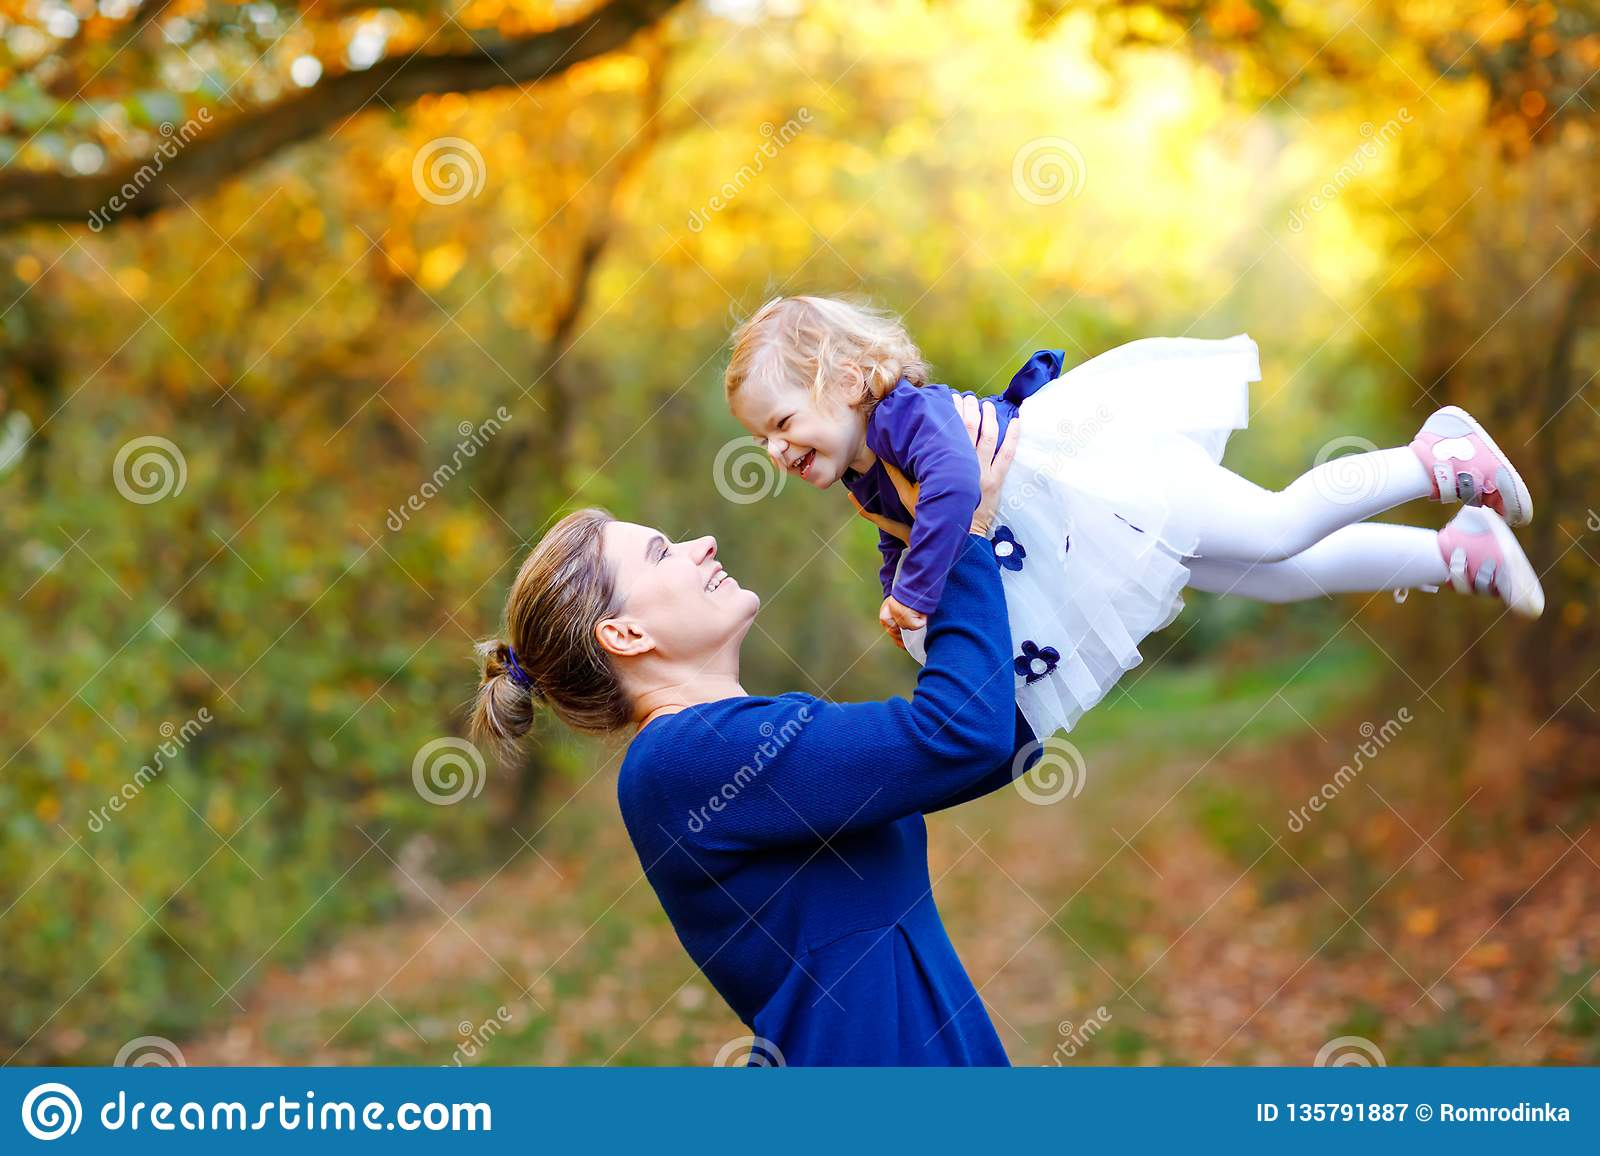 Happy young mother having fun cute toddler daughter, family portrait together. Woman with beautiful baby girl in nature